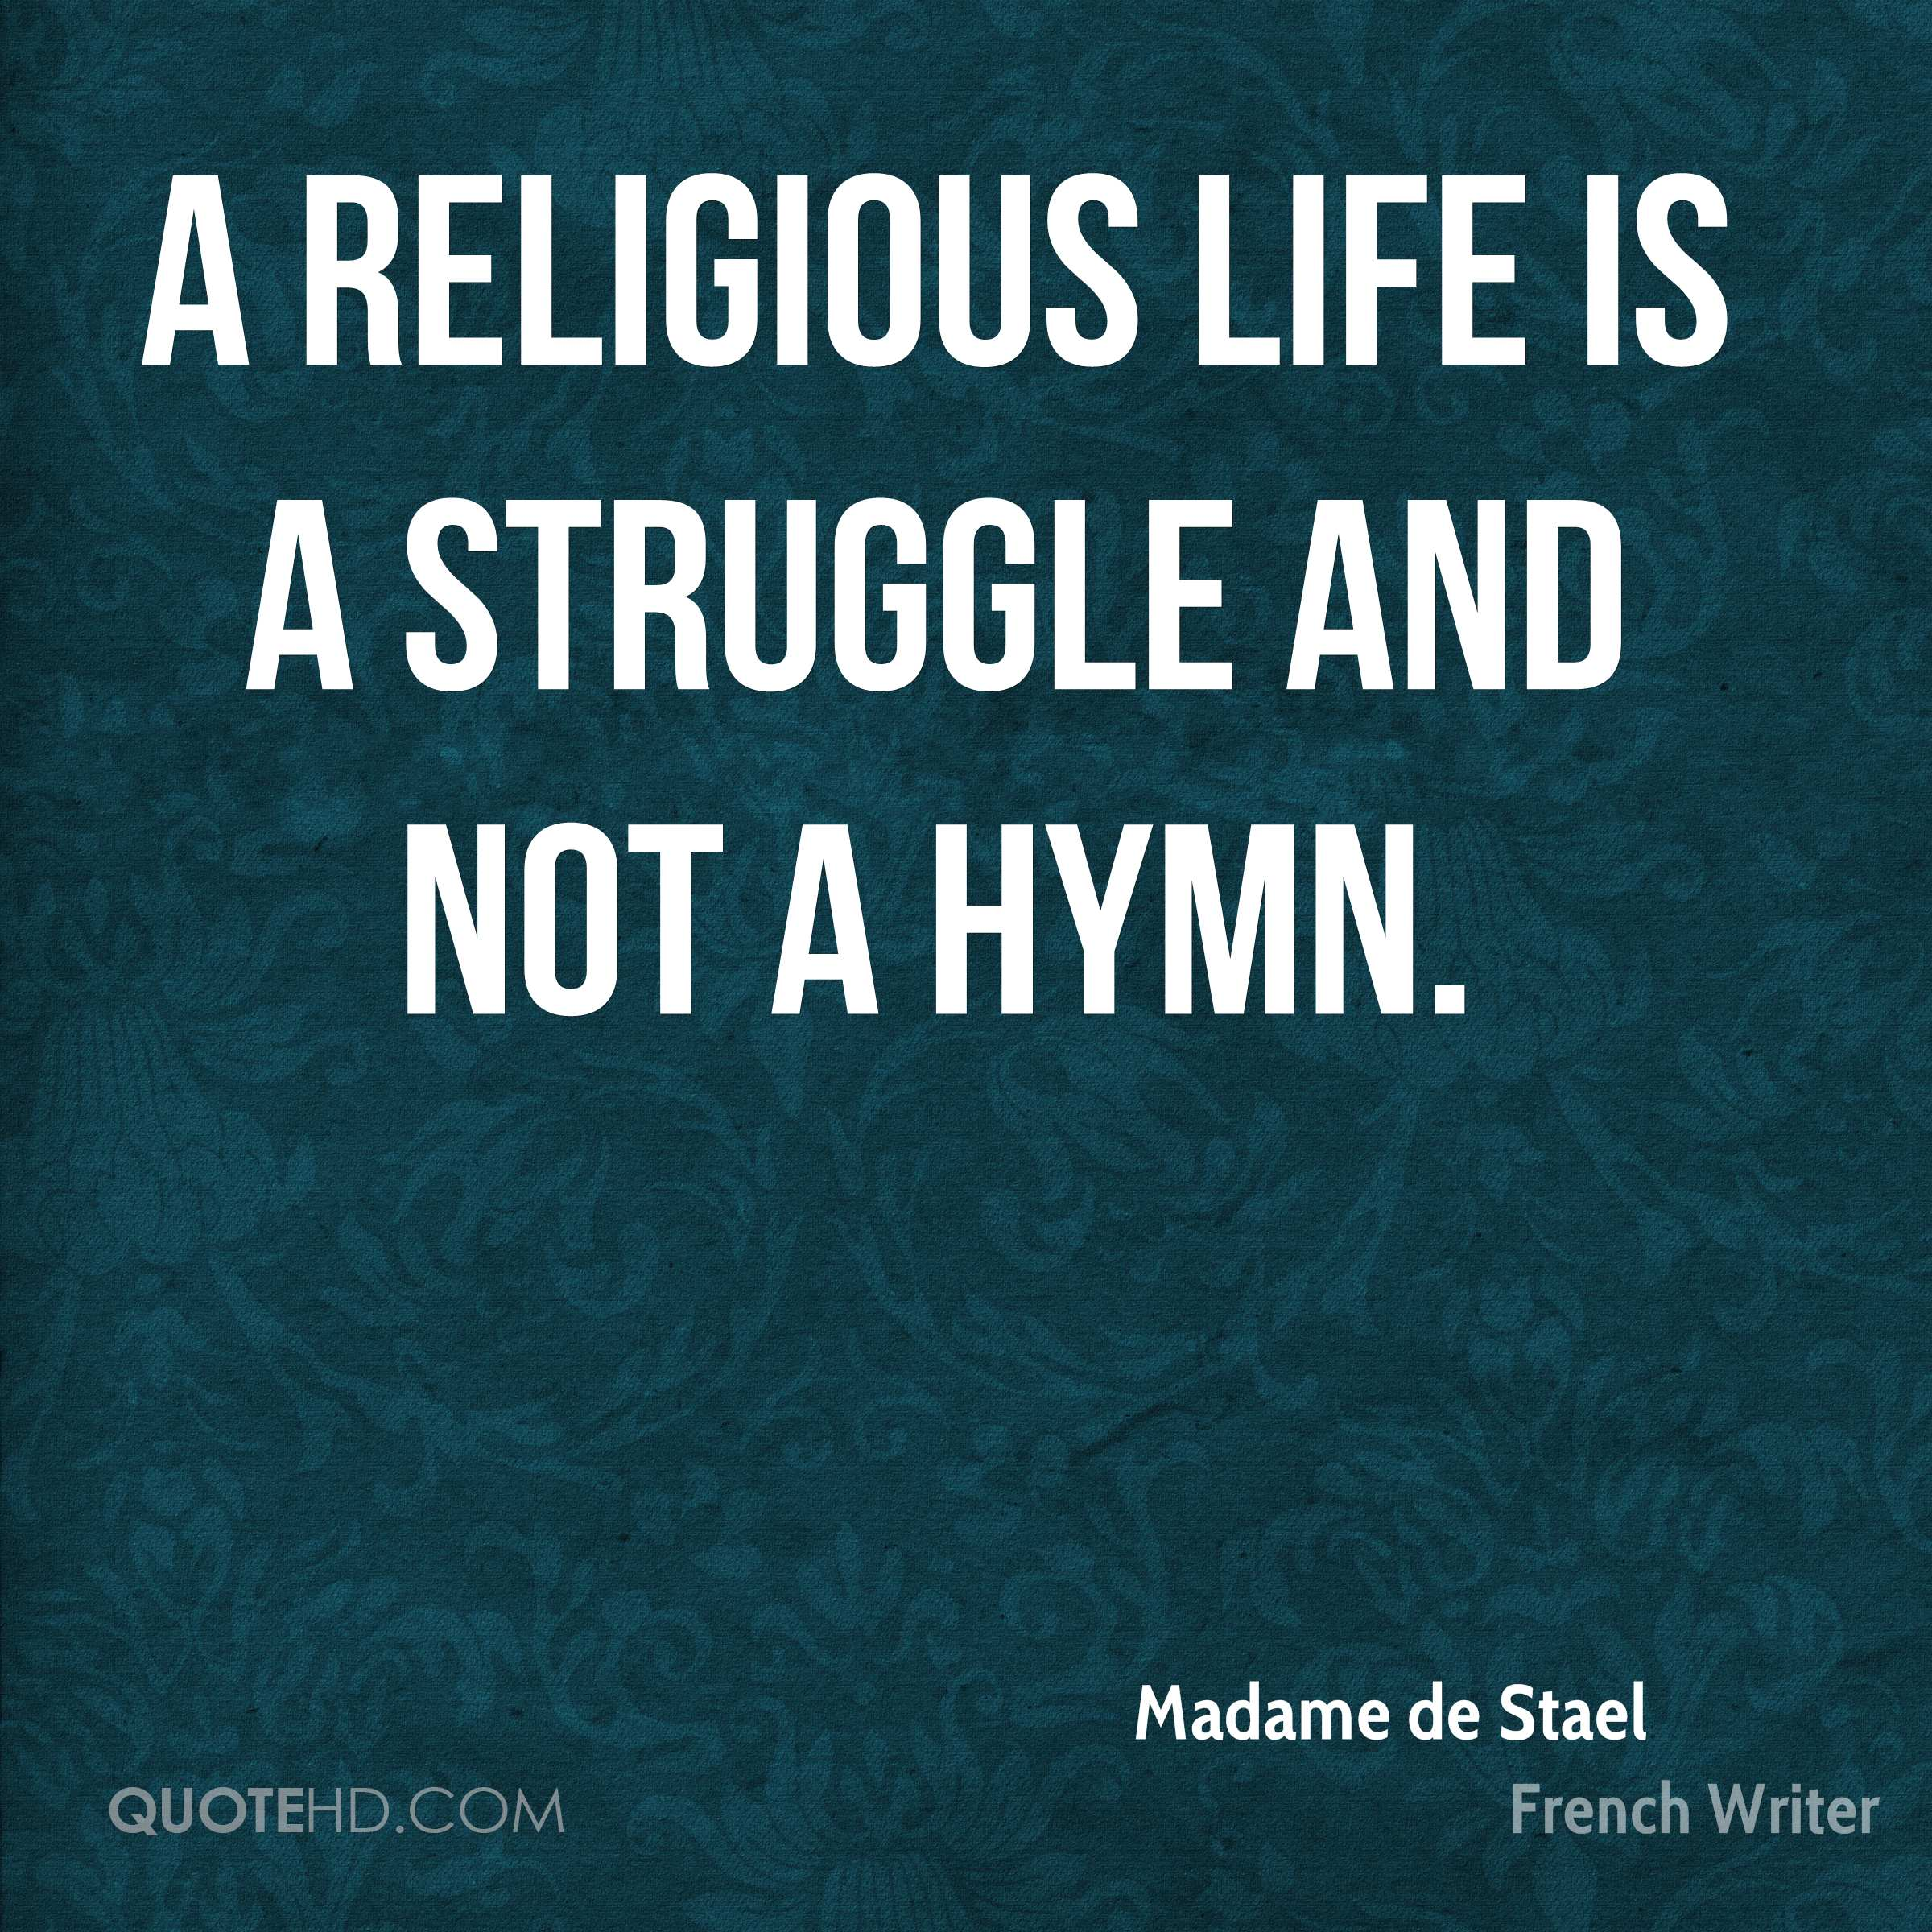 A religious life is a struggle and not a hymn.